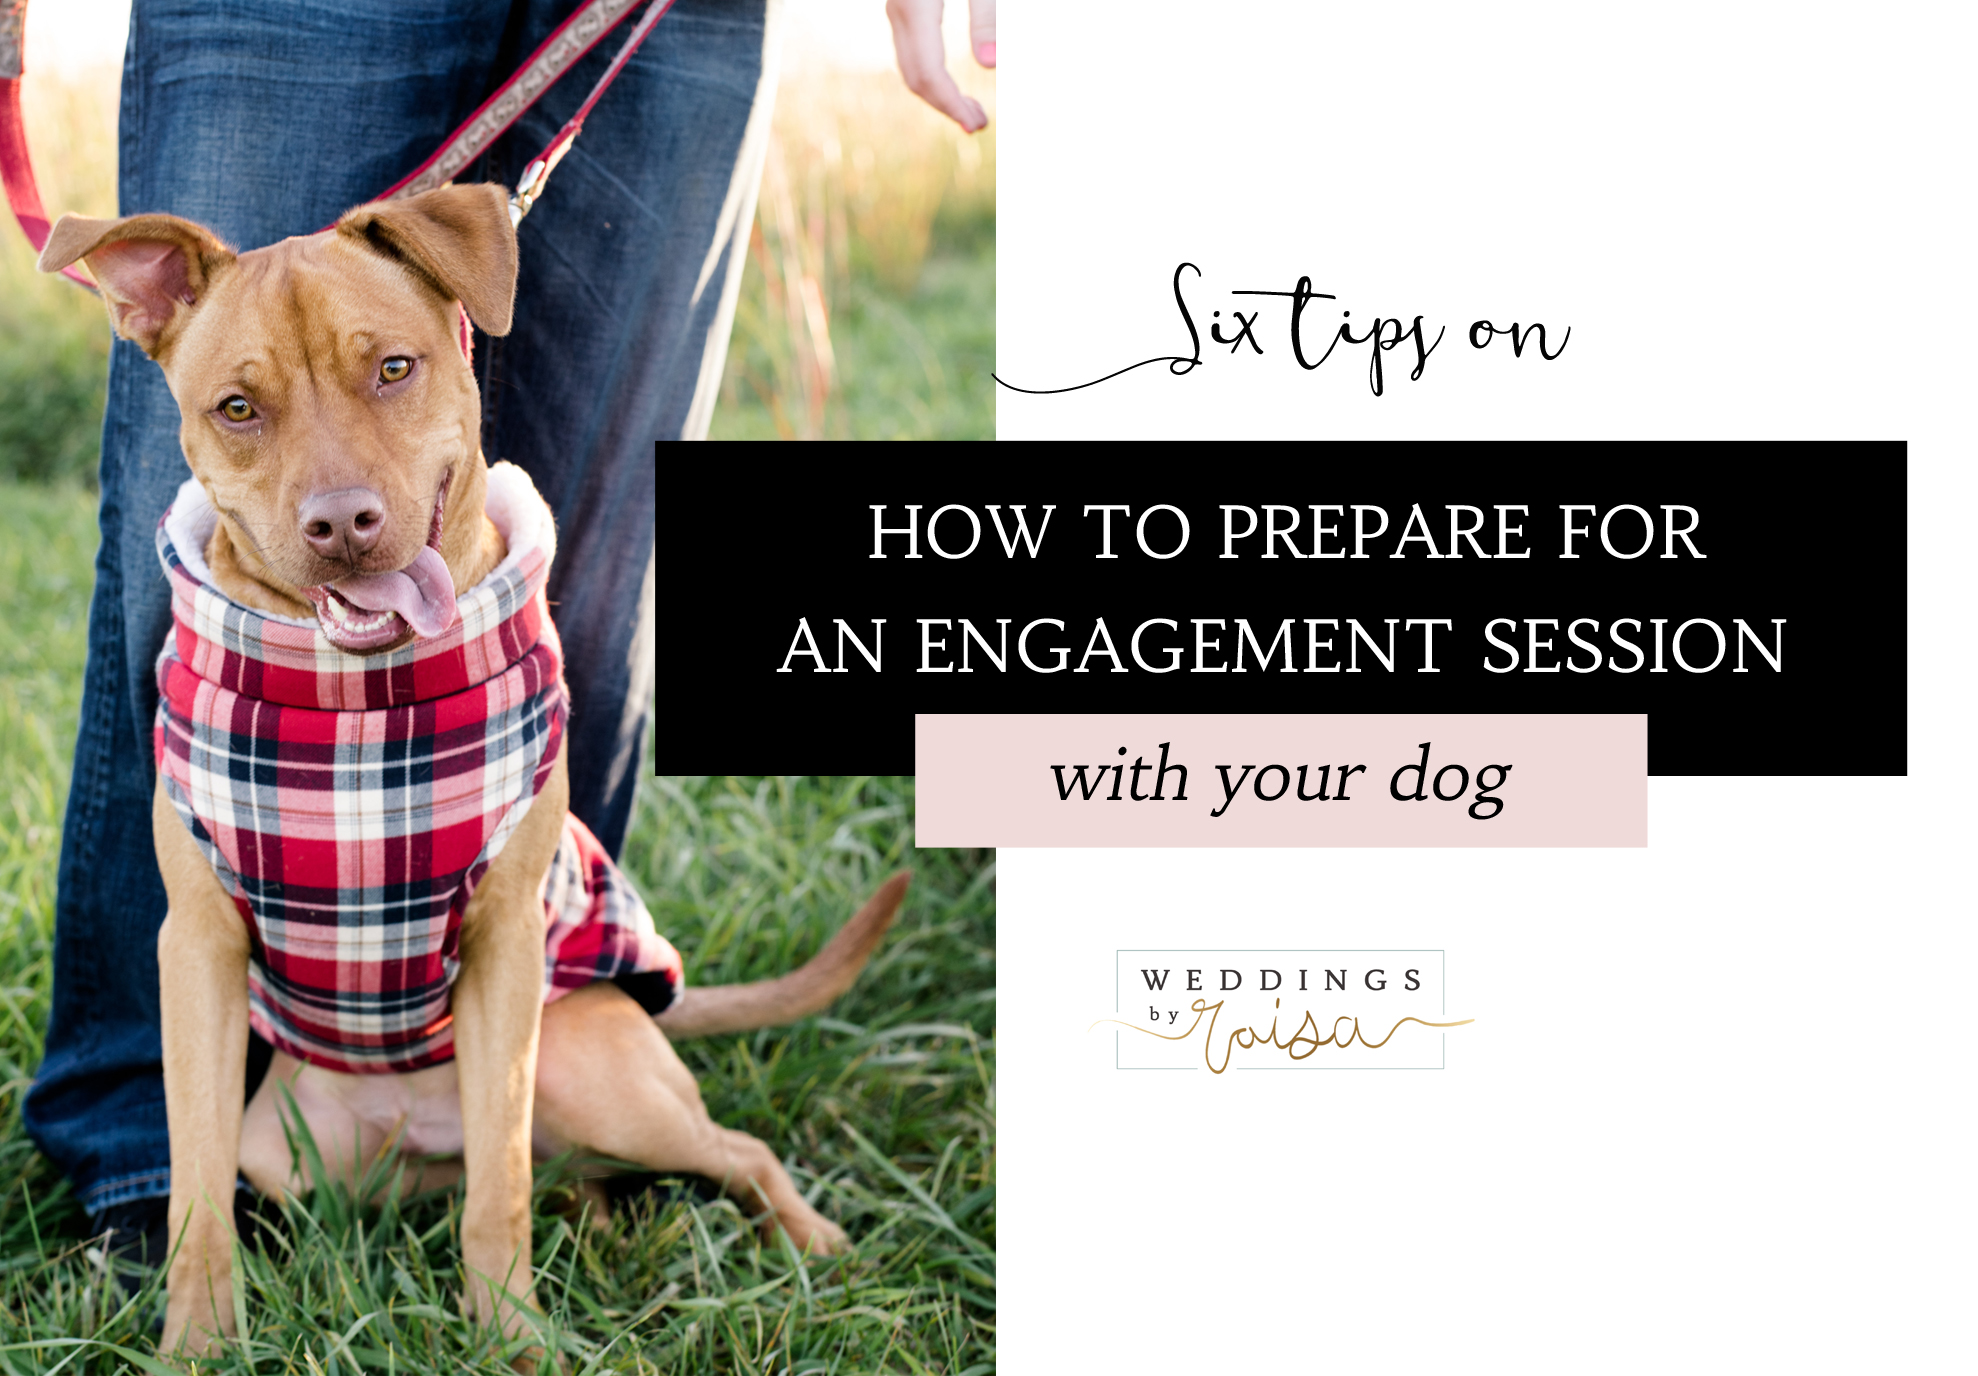 how-to-prepare-for-an-engagement-session-with-your-dog.jpg